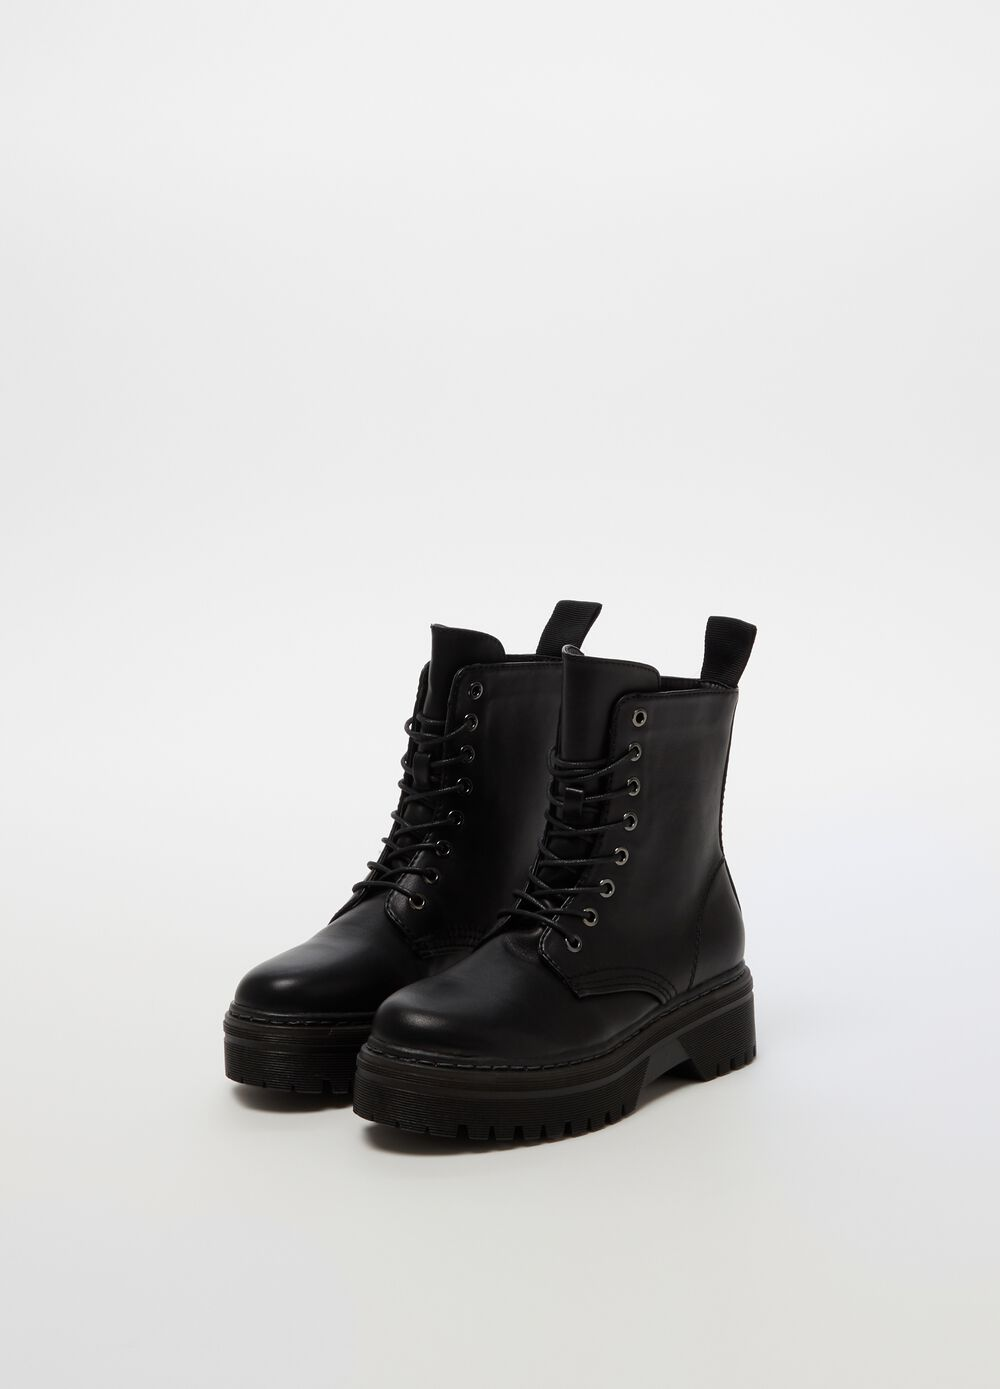 Leather-look field boots with thick sole